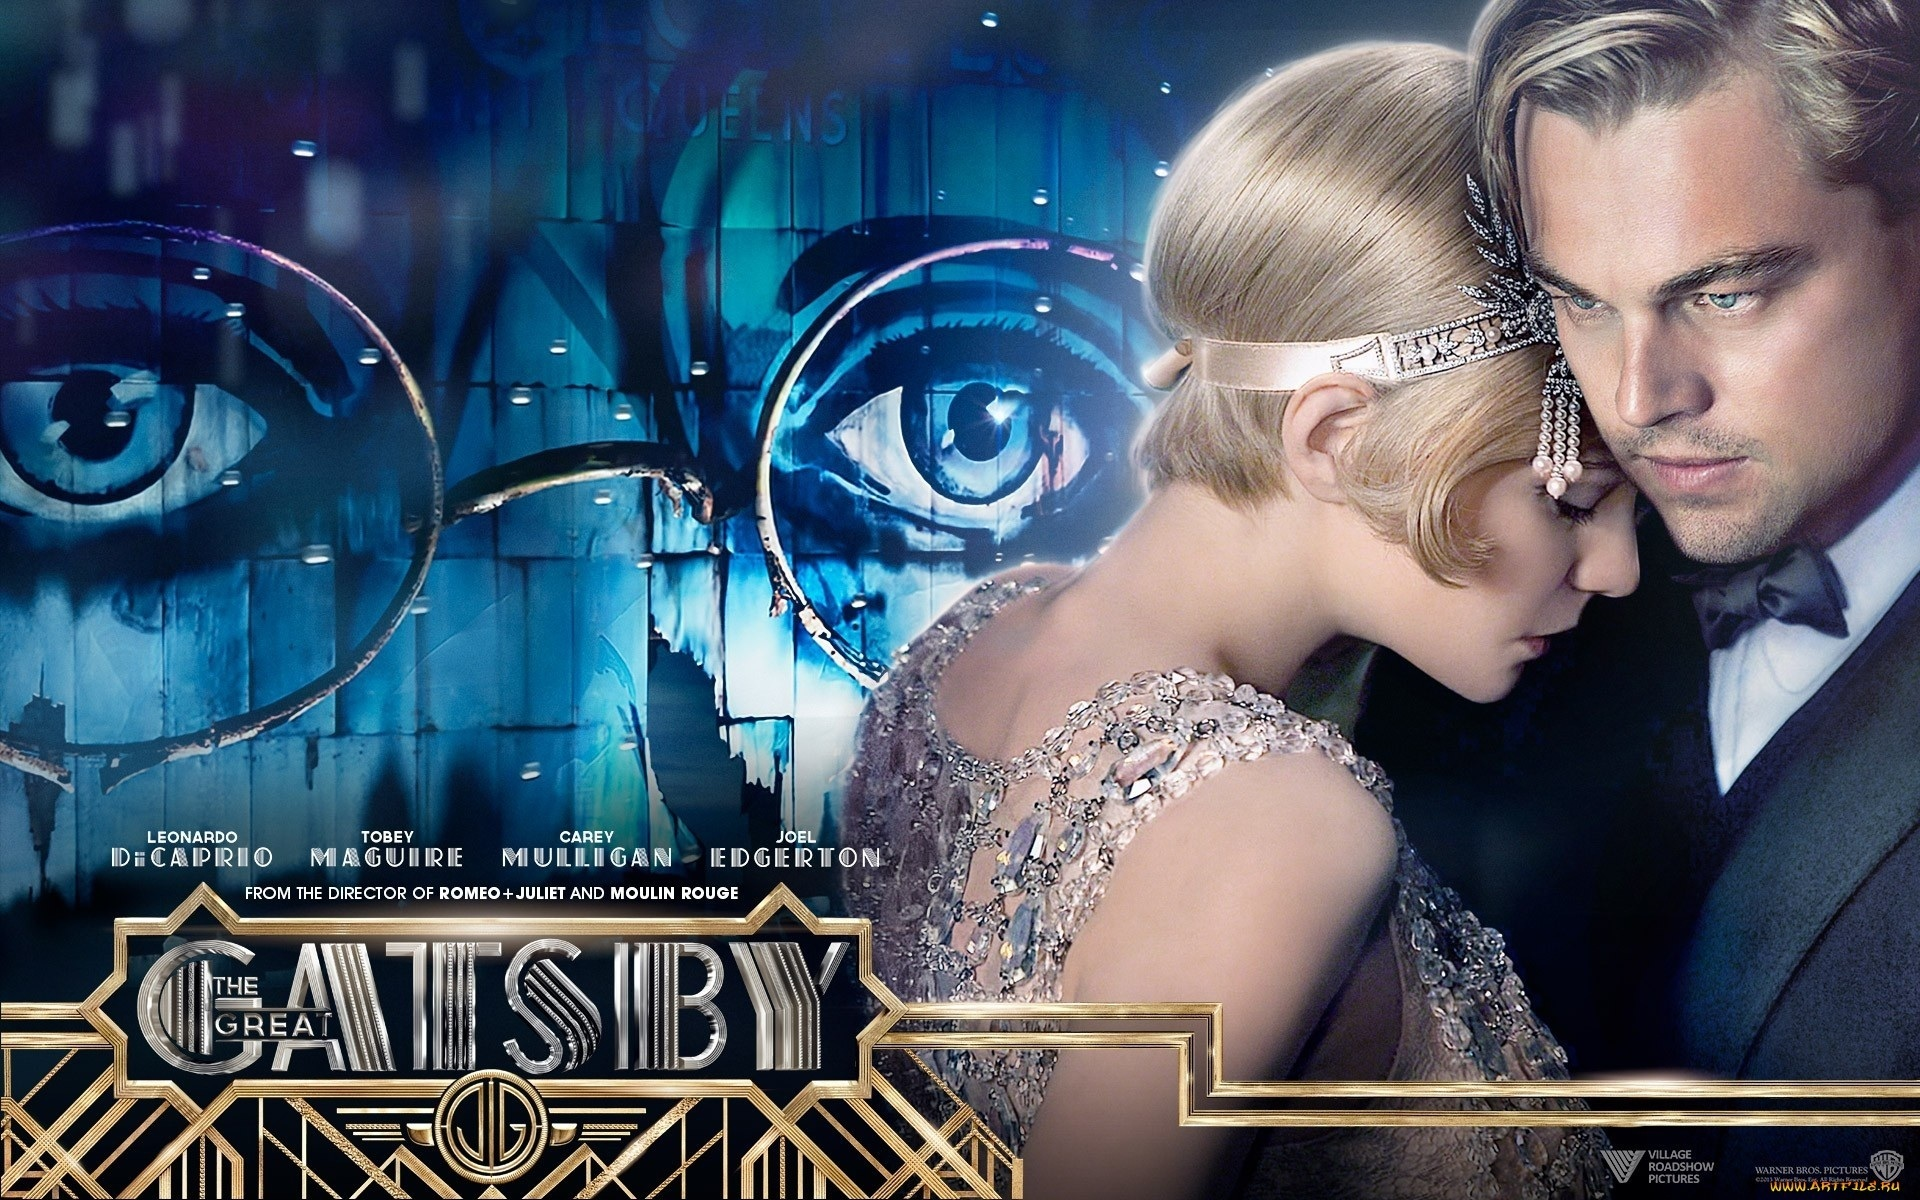 Image Great Gatsby Movie Poster Wallpapers And Stock Photos